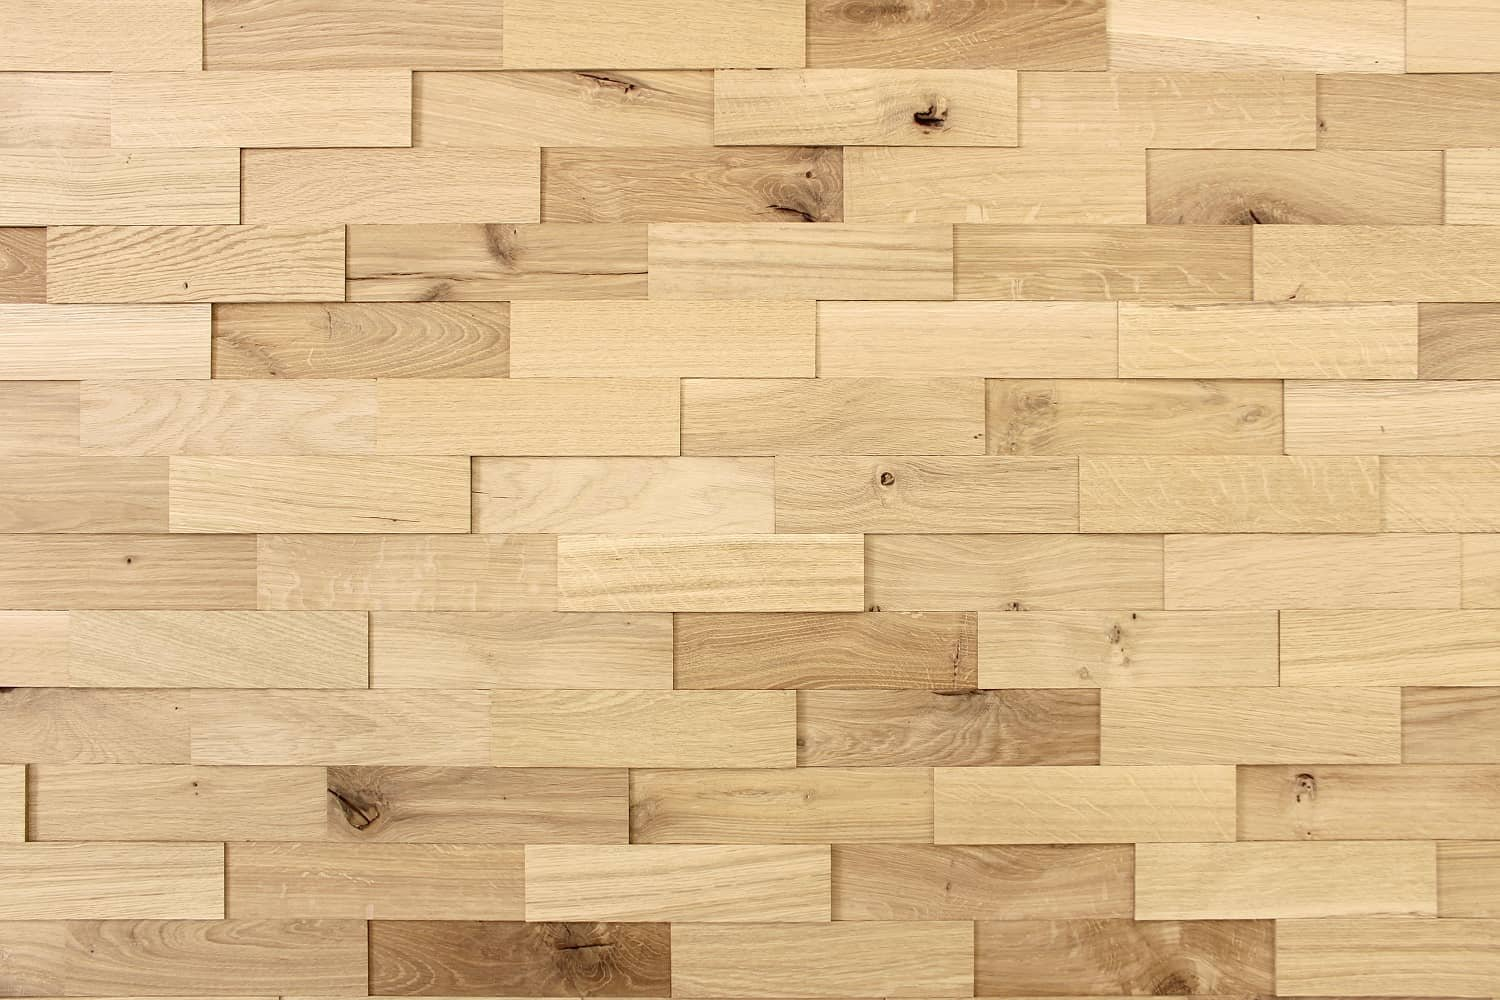 Wodewa Wood Cladding For Interior Walls 1m Oak Rustic Wooden Wall Cladding 3d Panels Modern Wall Covering Living Room Kitchen Bedroom Decoration Panelling Textured Natural Buy Online In India At Desertcart In Productid